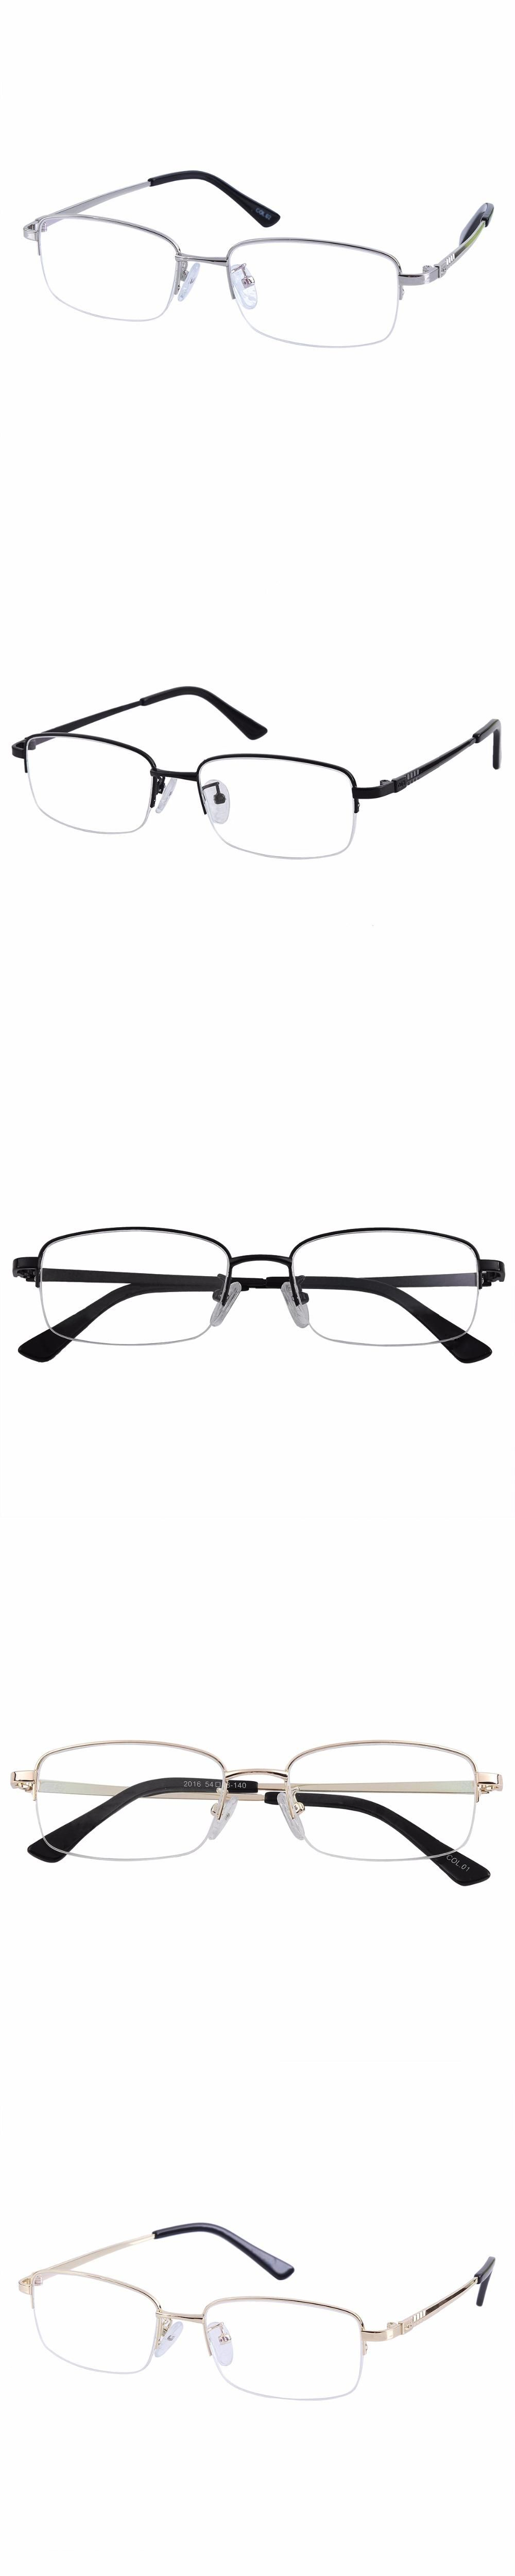 Southern Seas Half Rim Nearsighted Glasses Mens Womens Eyewear Black Silver Gold 0.50 To 6.0 Prescription Myopia Eyeglasses